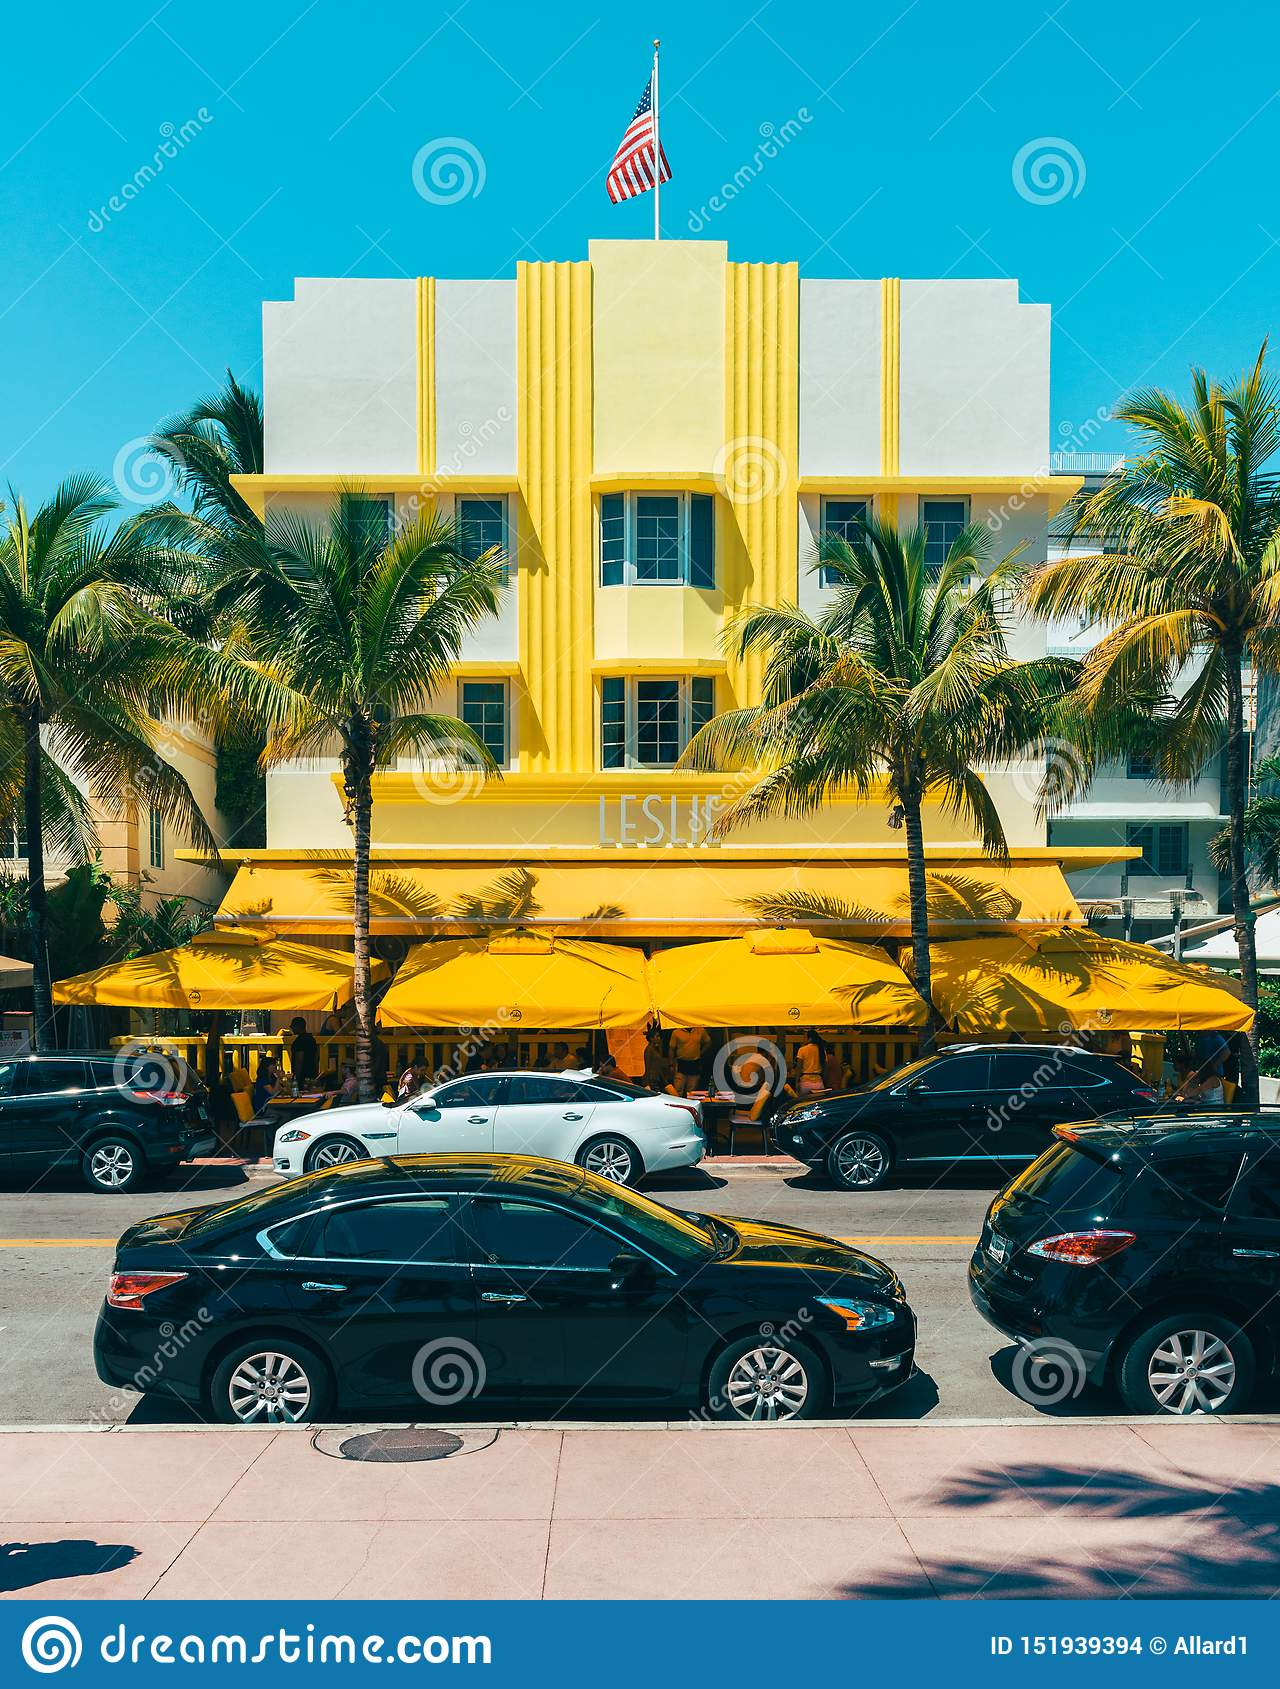 Leslie Hotel in Miami South Beach Florida USA